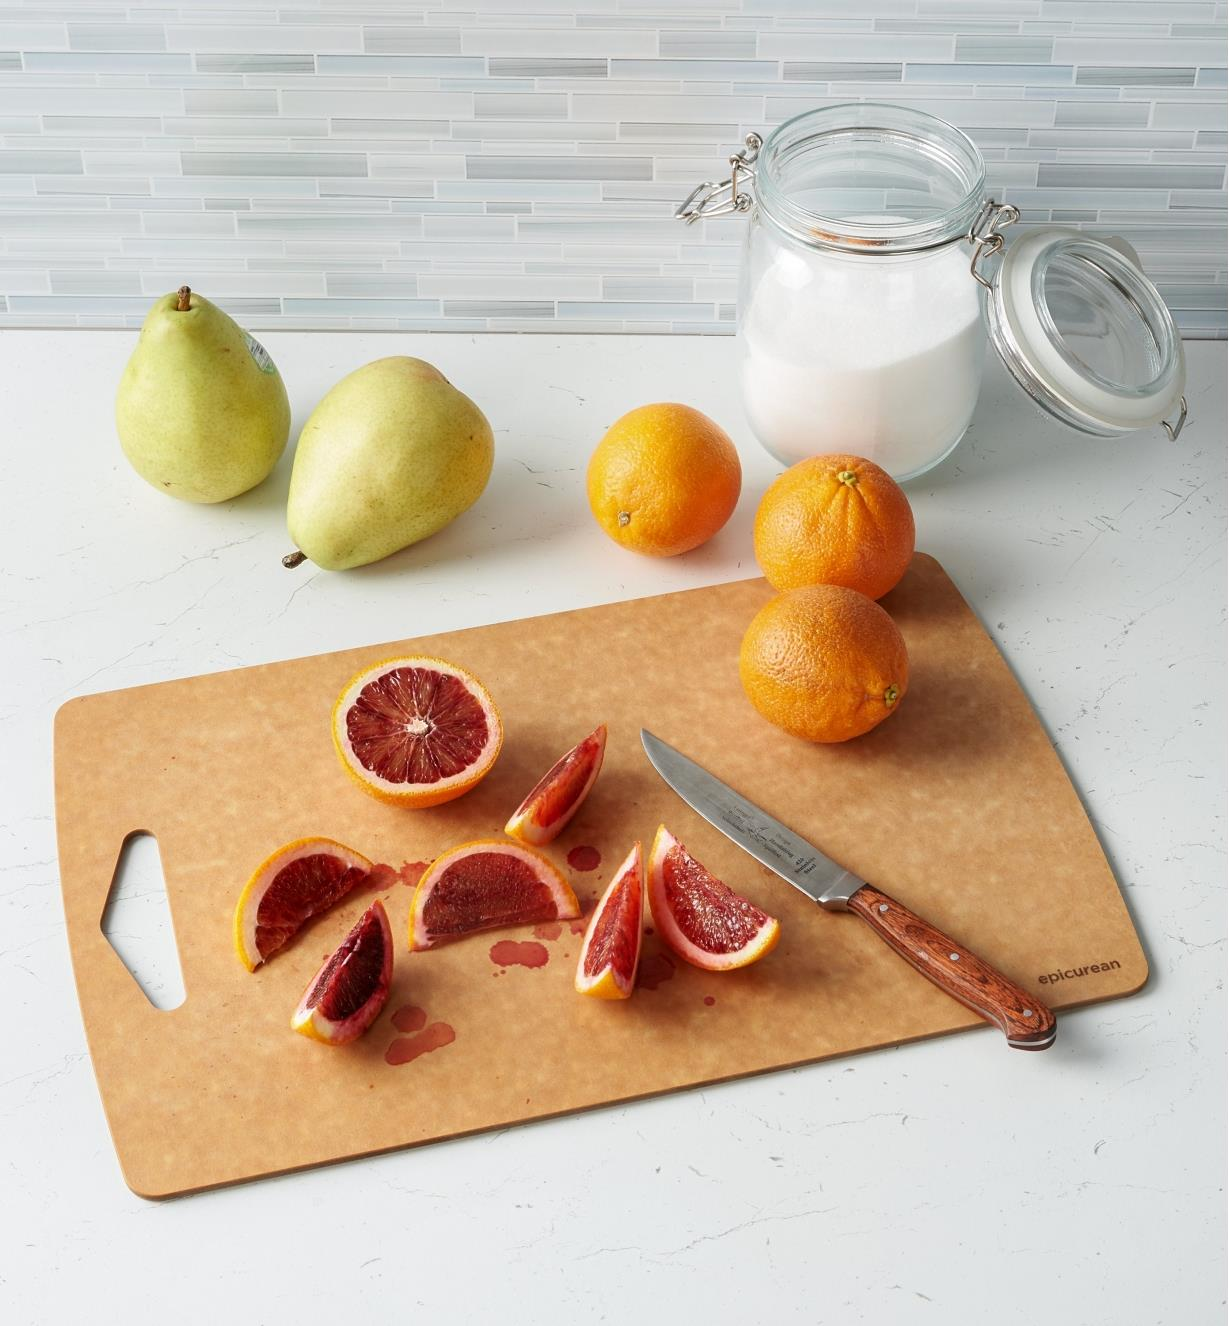 "EV416 - Large Epicurean Prep Series Cutting Board, 15 1/2"" x 10"""